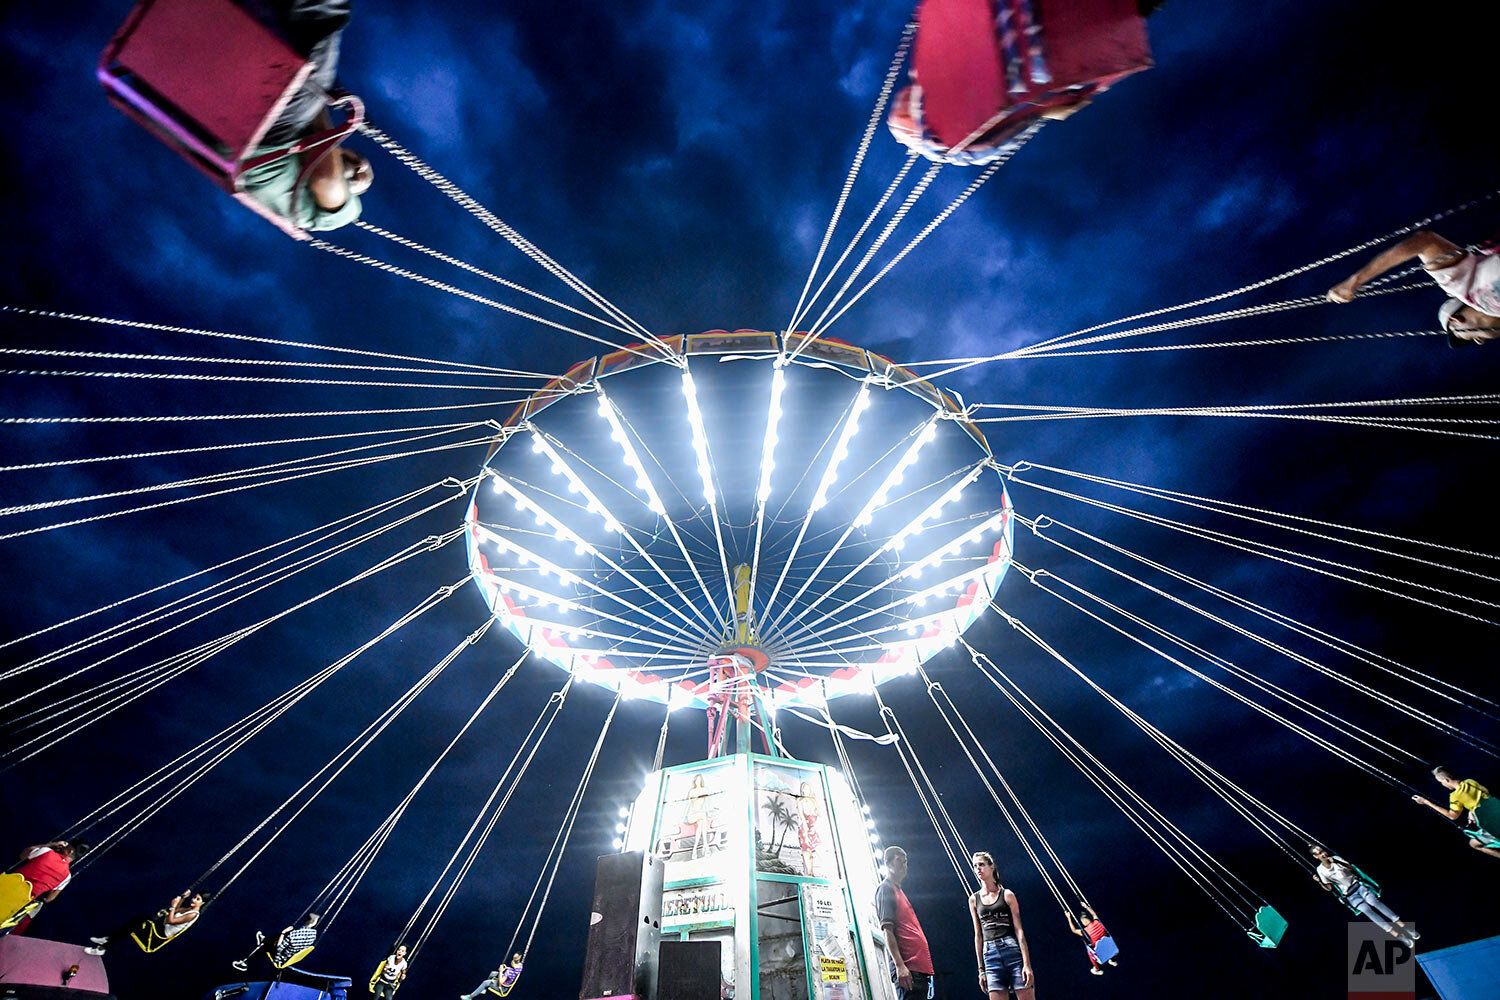 People enjoy a swing ride at an autumn fair in Titu, southern Romania, Sept. 14, 2019. (AP Photo/Andreea Alexandru)